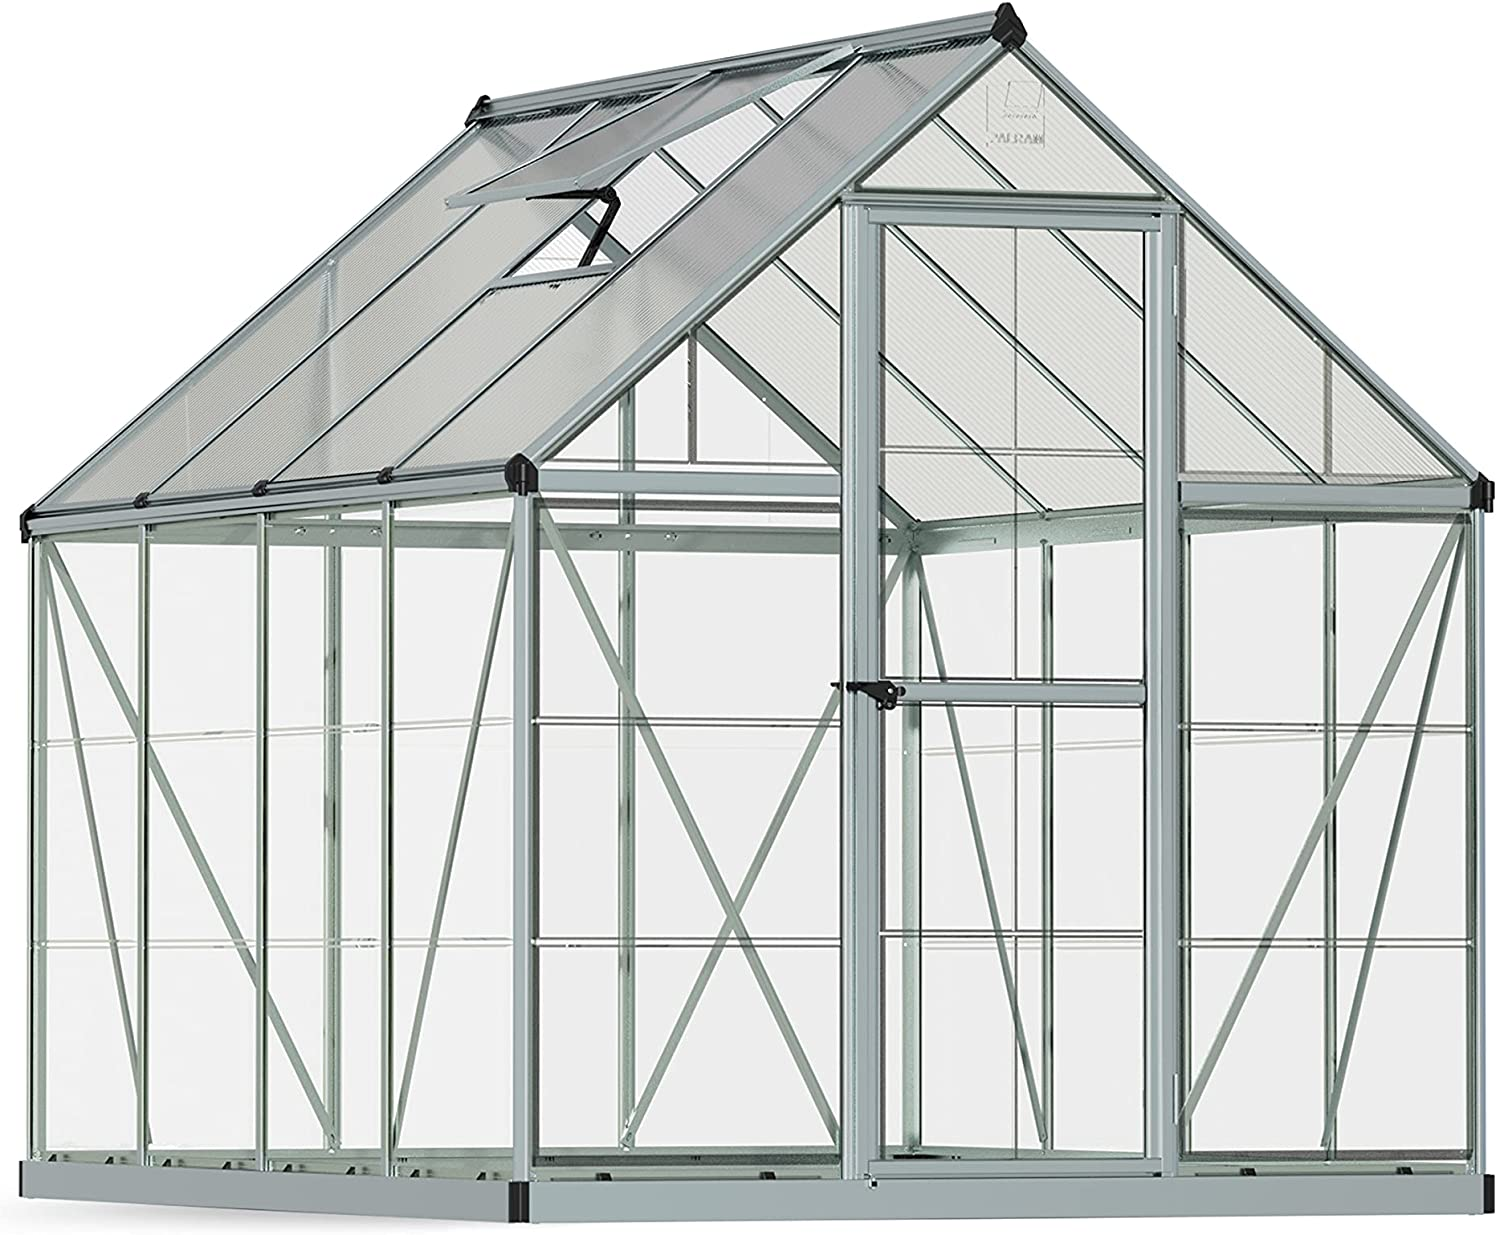 Palram HG5508 Cheap mail order shopping Hybrid Hobby Greenhouse 7' 8' 6' Low price x Silver